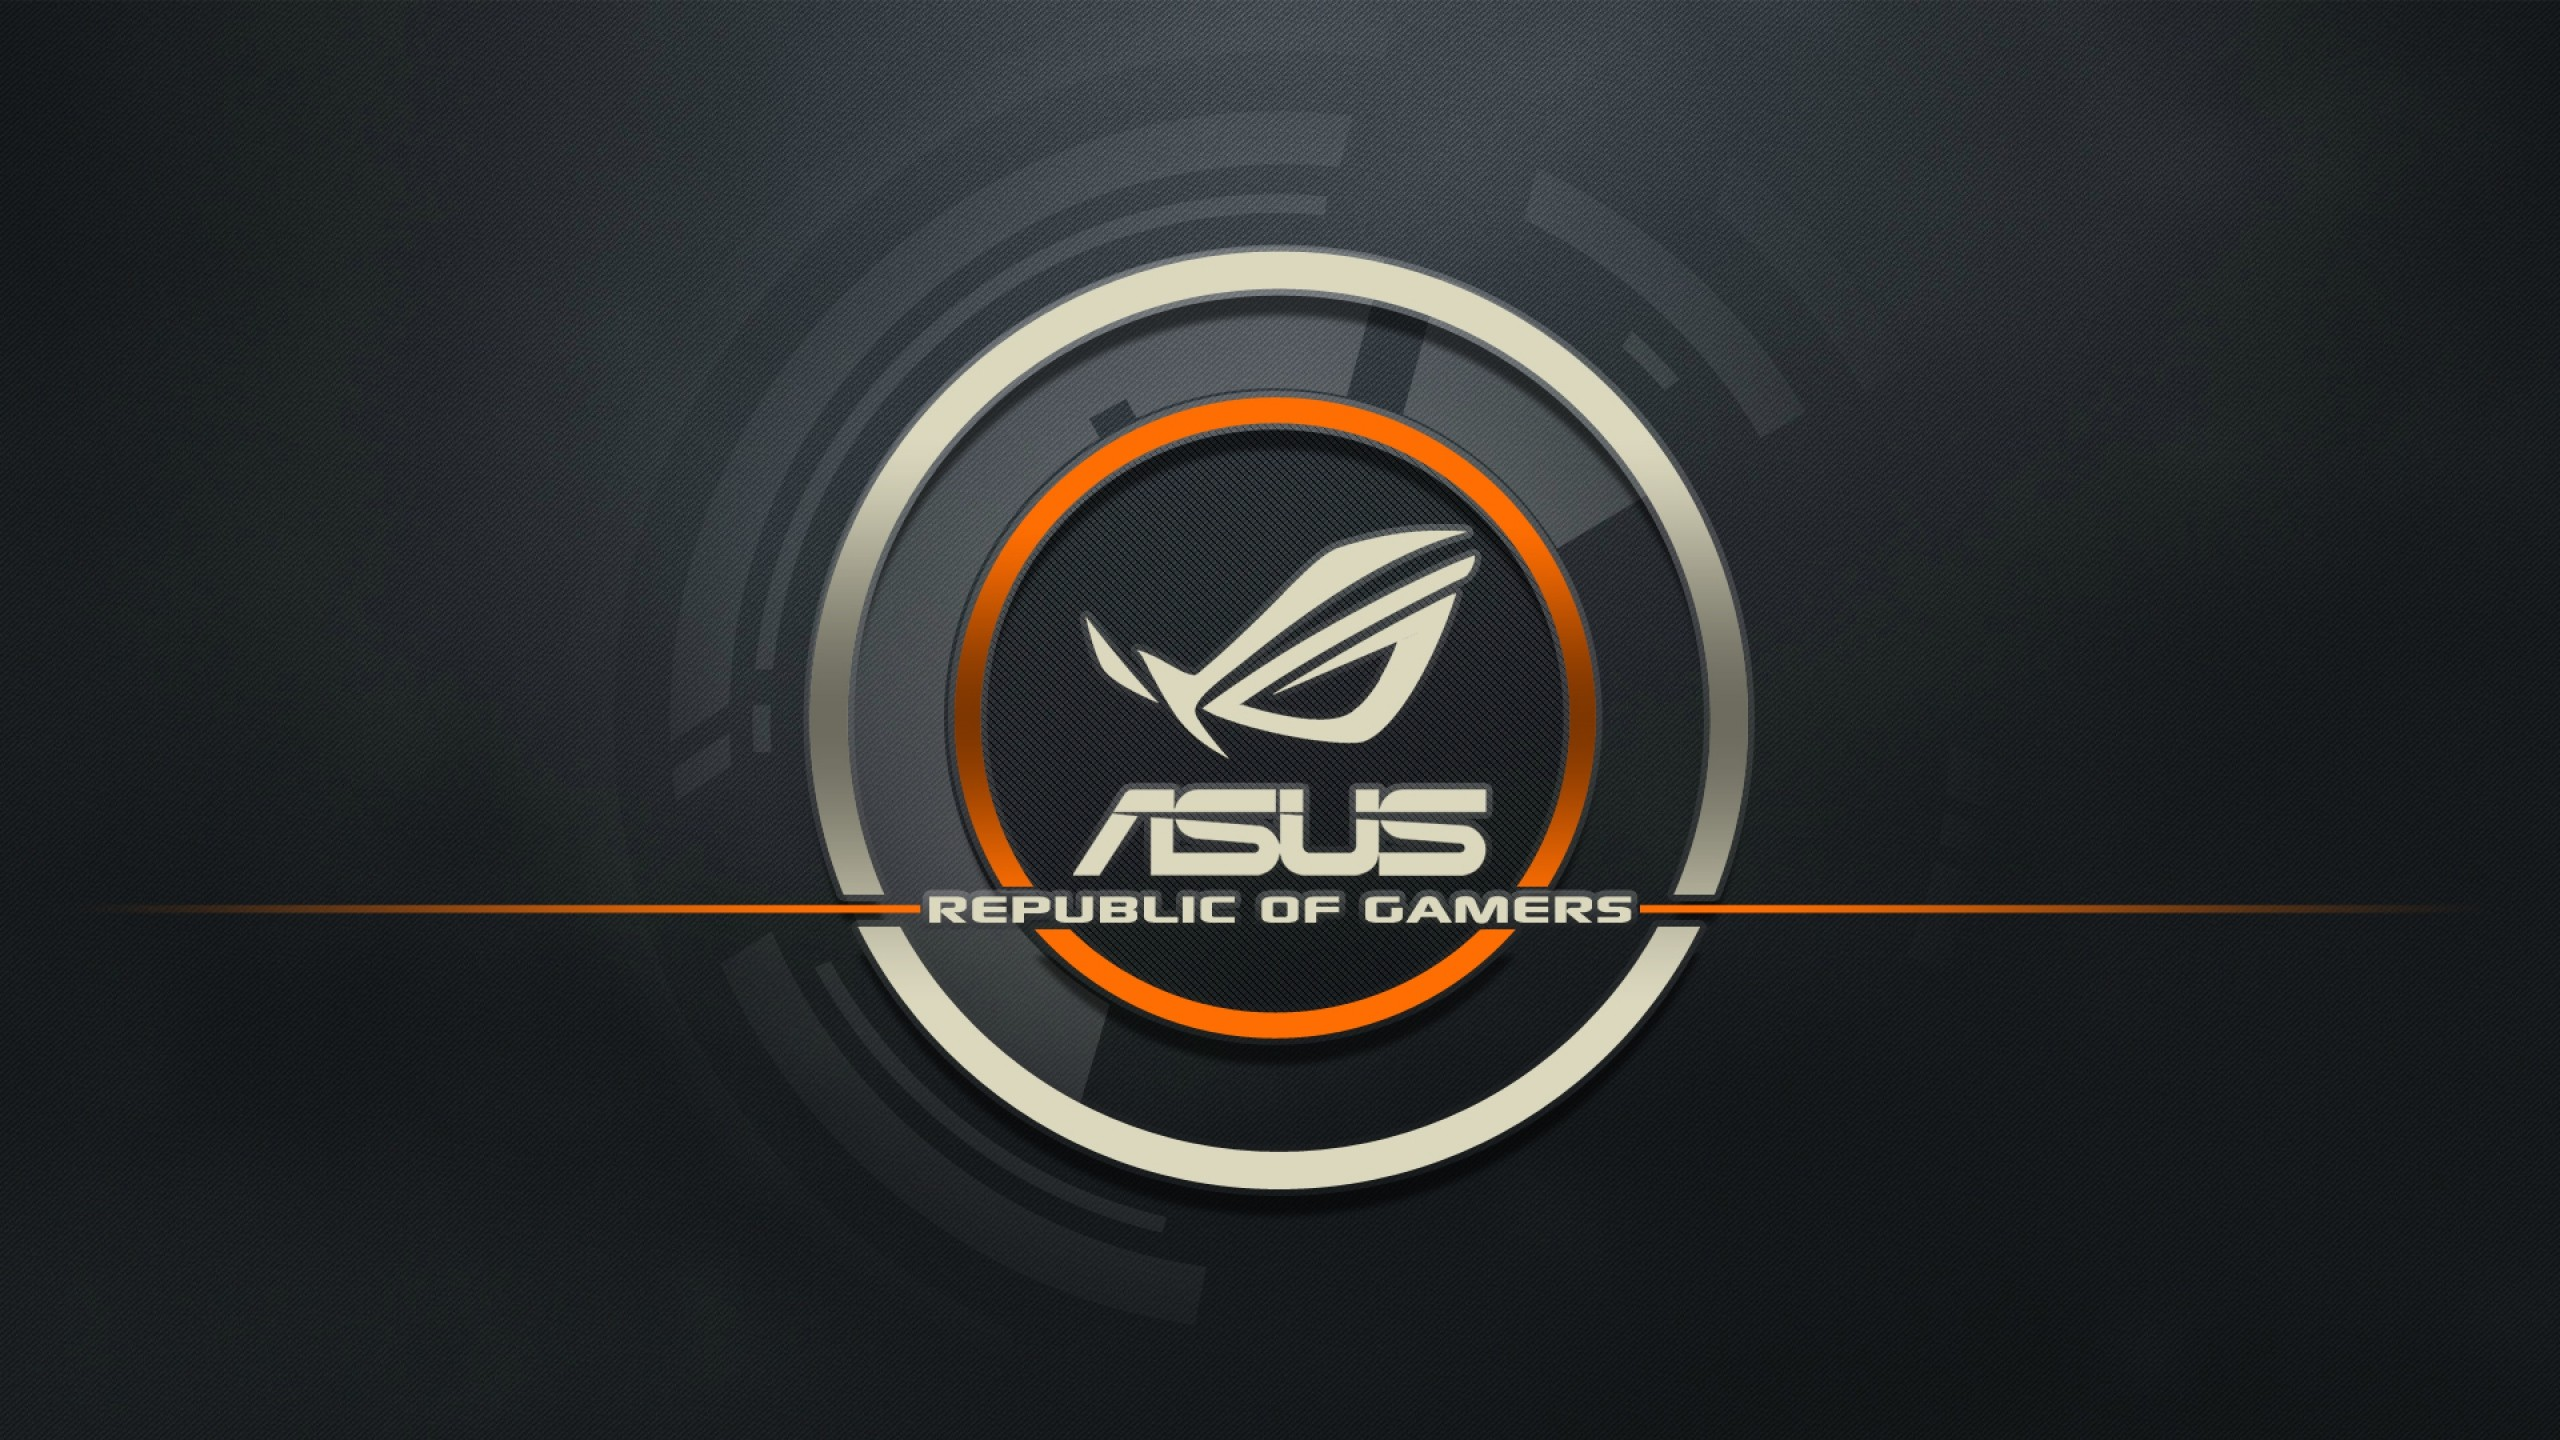 2560x1440  Wallpaper asus, logo, republic of gamers, computer